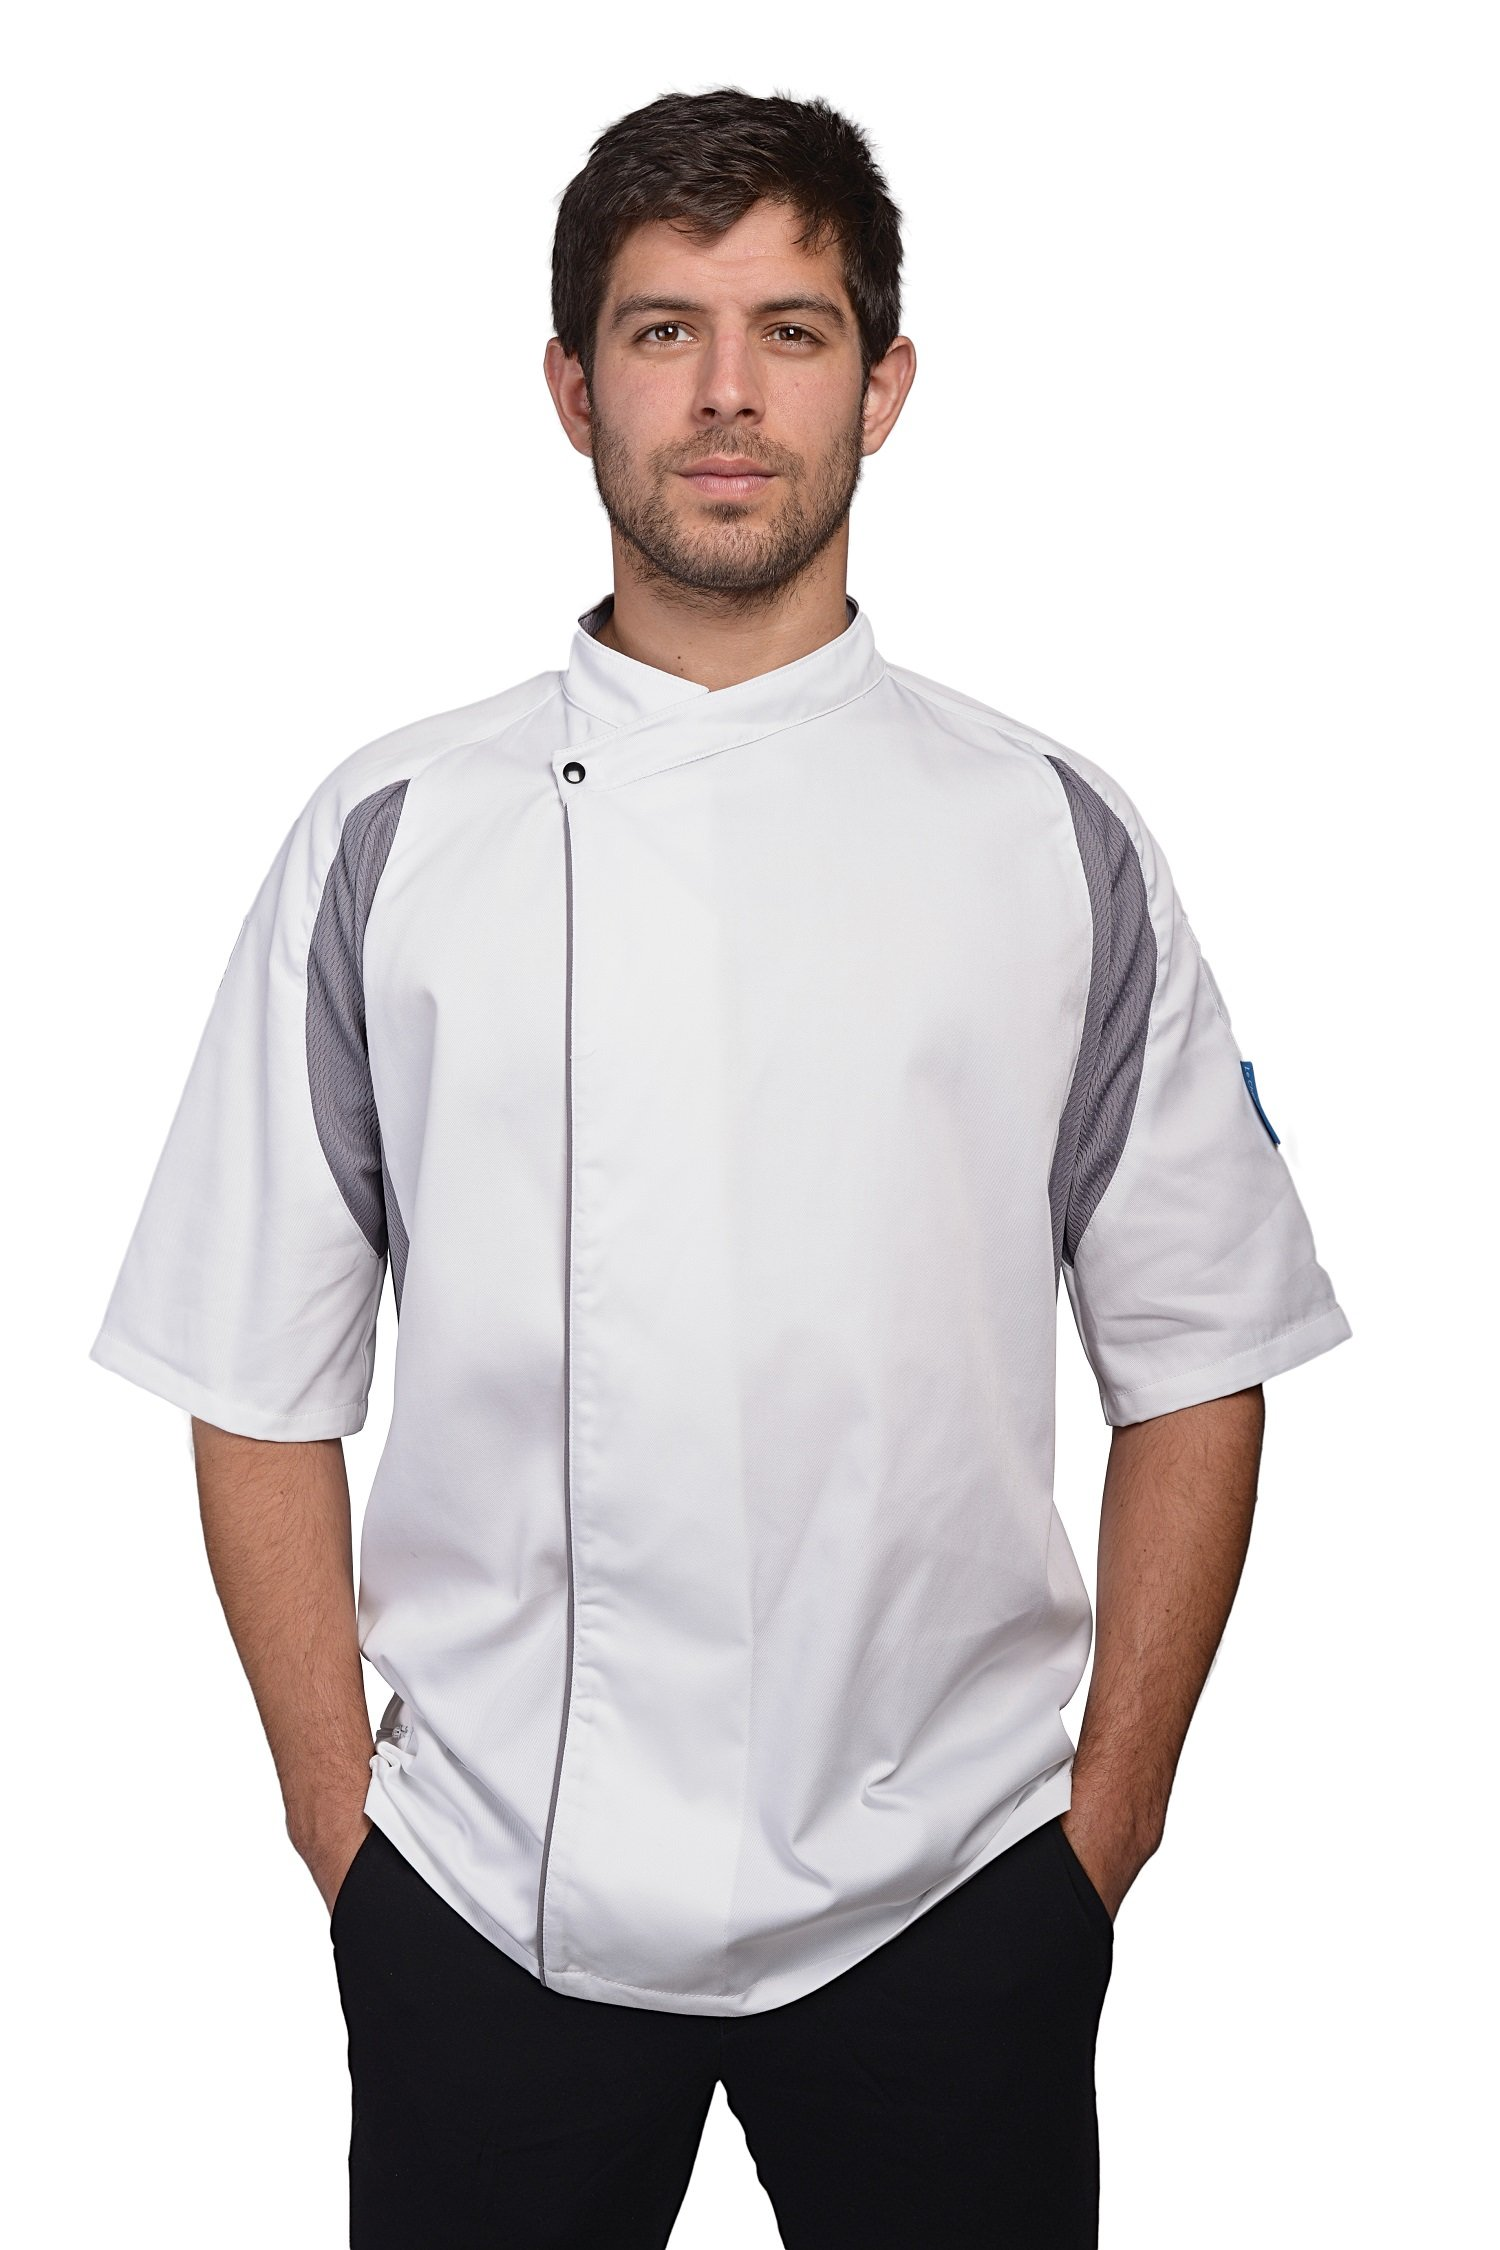 Le Chef Staycool Executive Short Sleeved Tunic - 3 Colours / - White/ Grey - XS by Le Chef